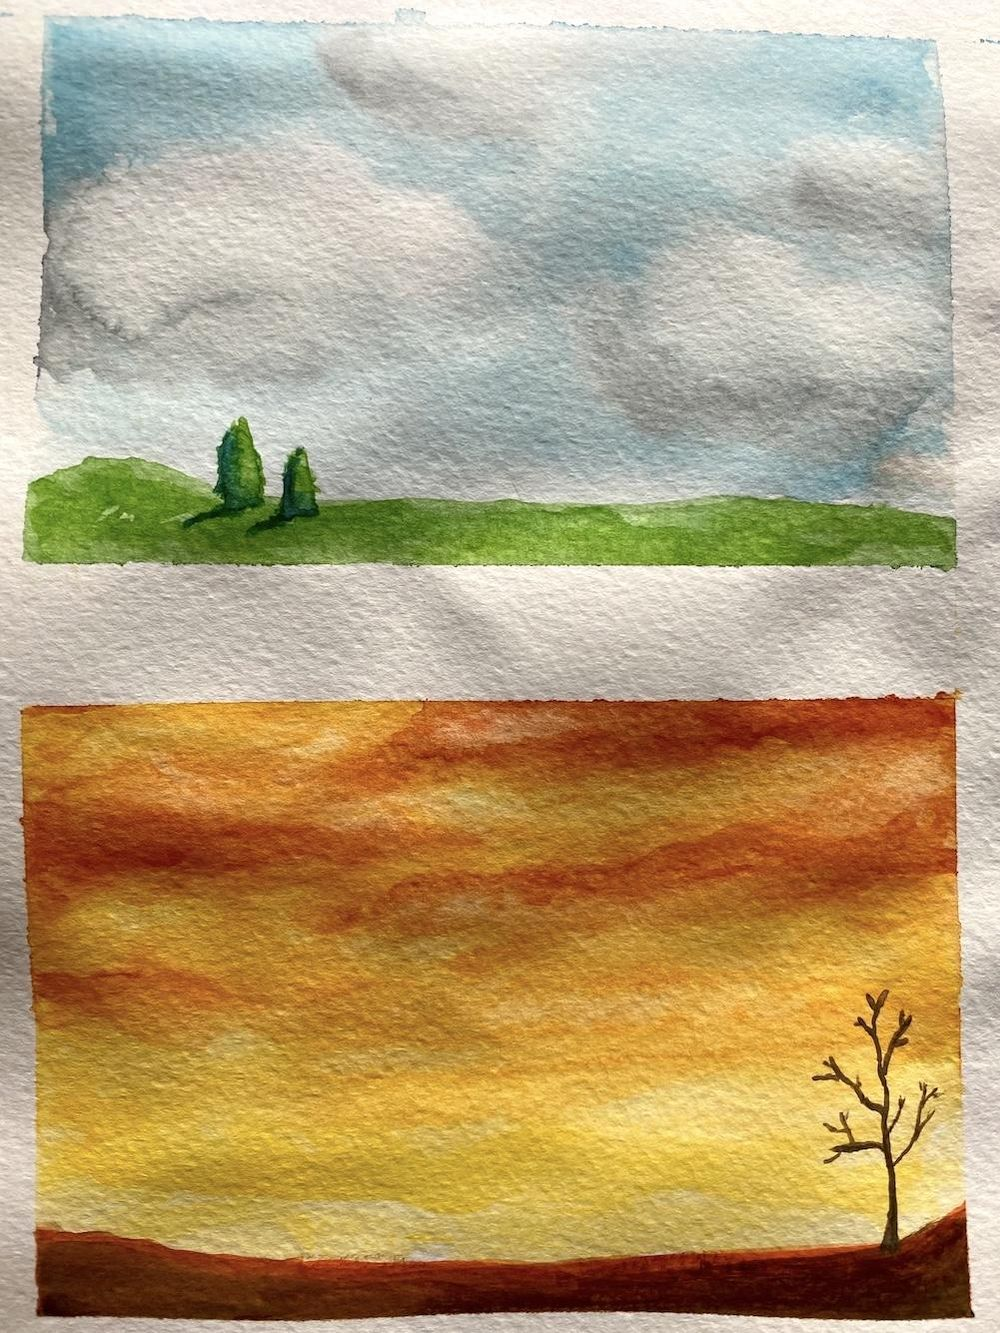 Watercolor landscapes - Z. Nabeel - image 5 - student project